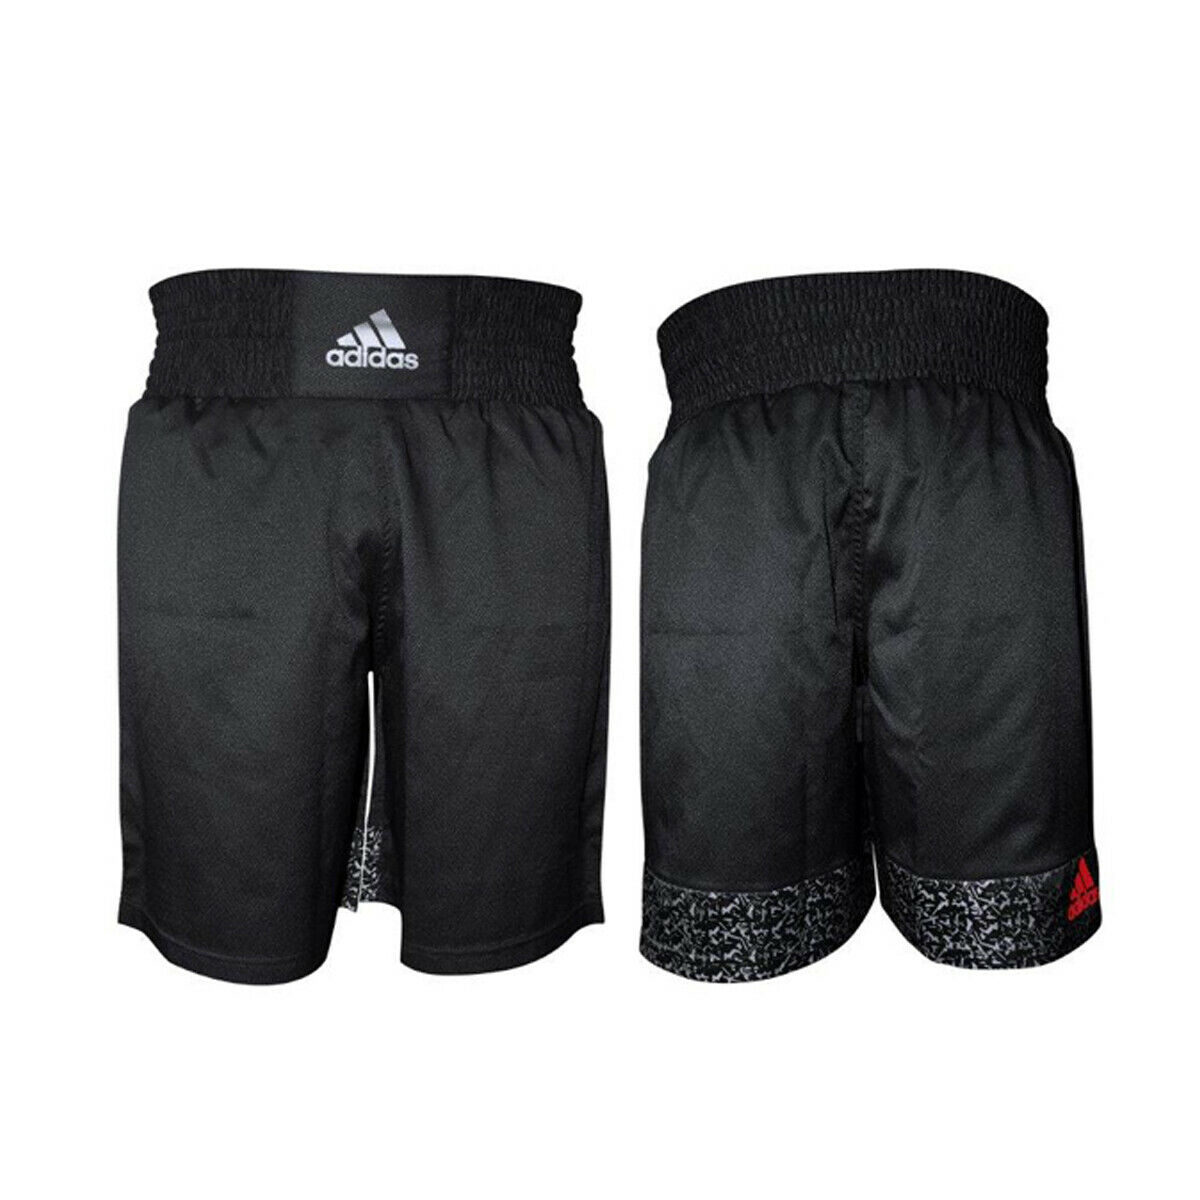 Pantaloncino Boxe Dark vs Light Adidas  15502057K